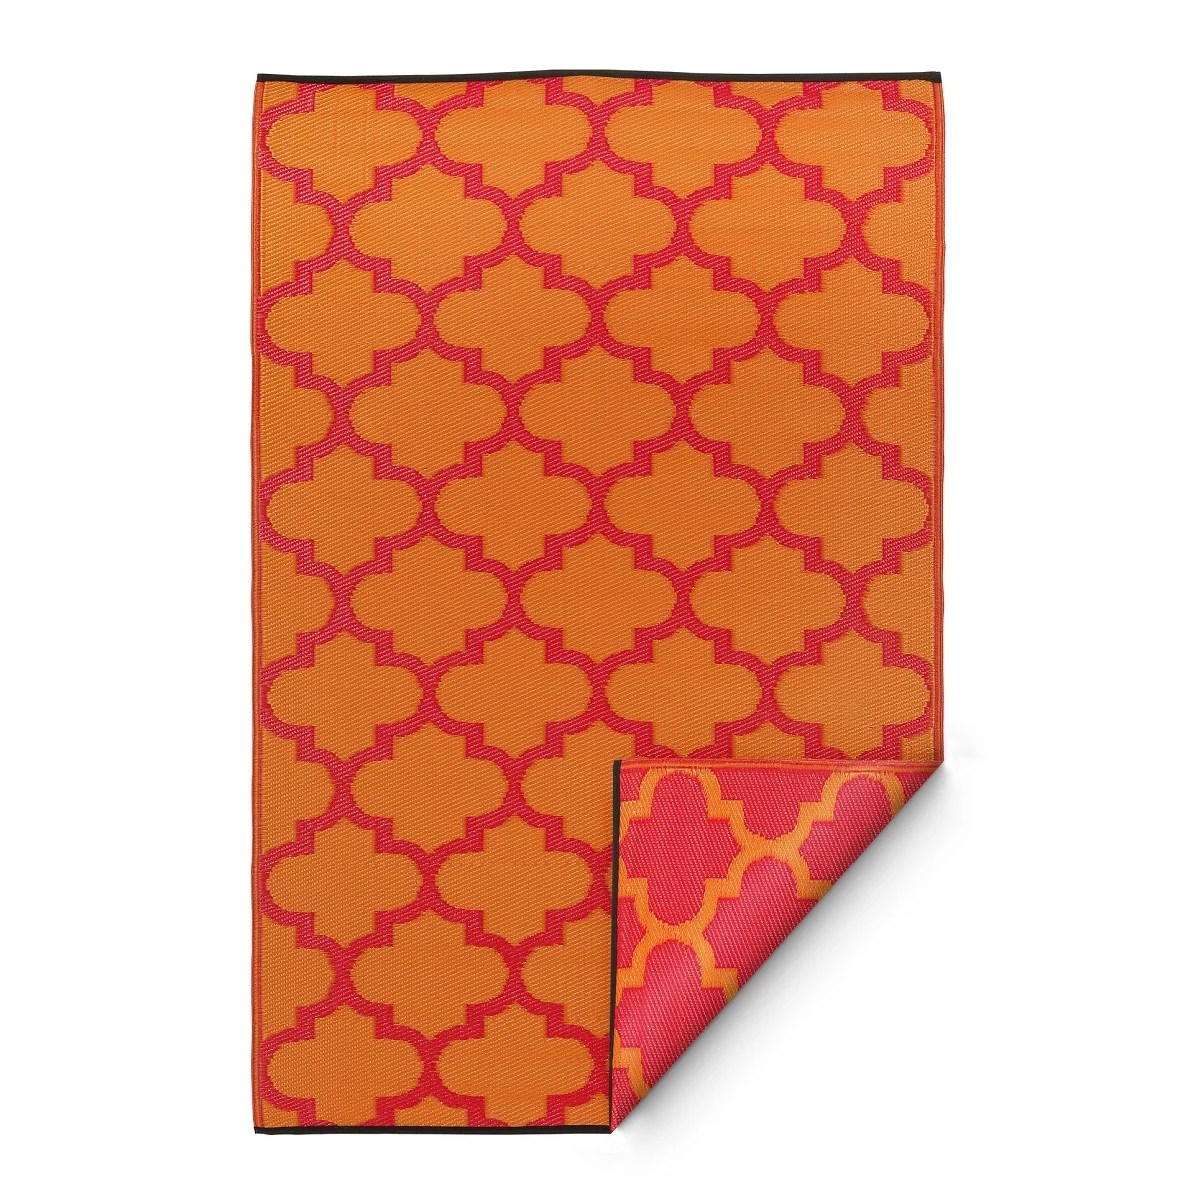 Outdoor Teppich Habitat Boholiving Teppich Morrocan In Rosa Orange And Bewertungen